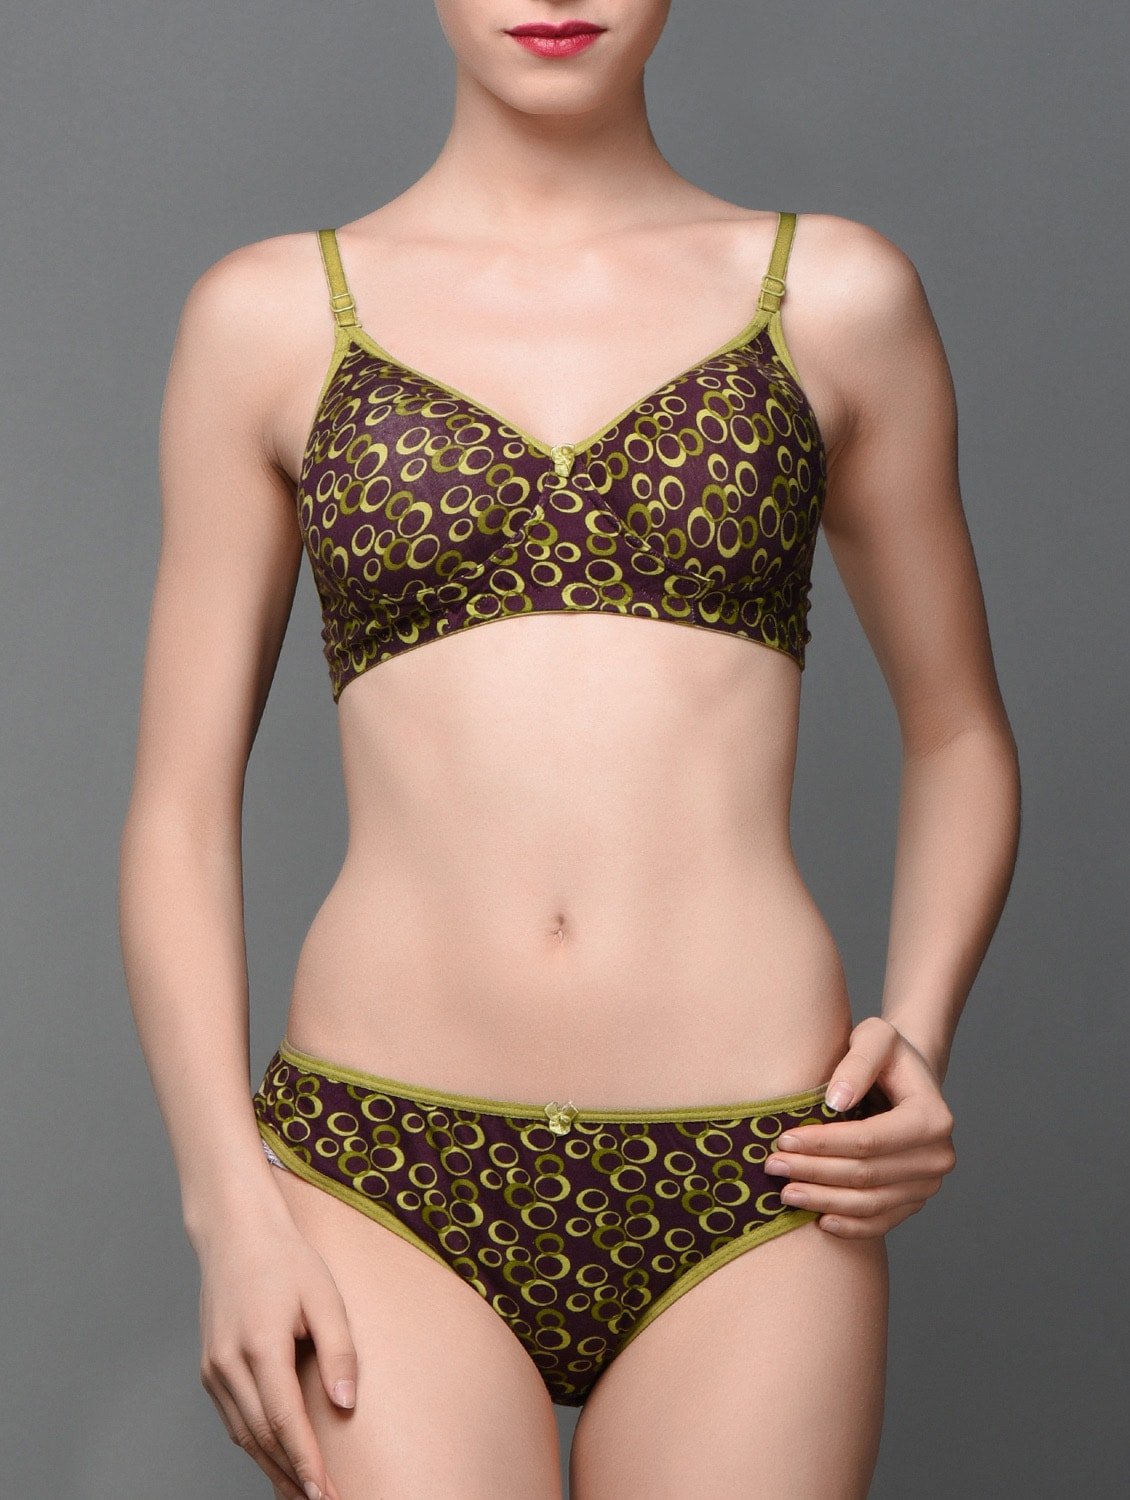 e5c9c11ade Buy Green Printed Cotton Push Up Bra Panty Set by Vermilion - Online  shopping for Bras And Panty Set in India